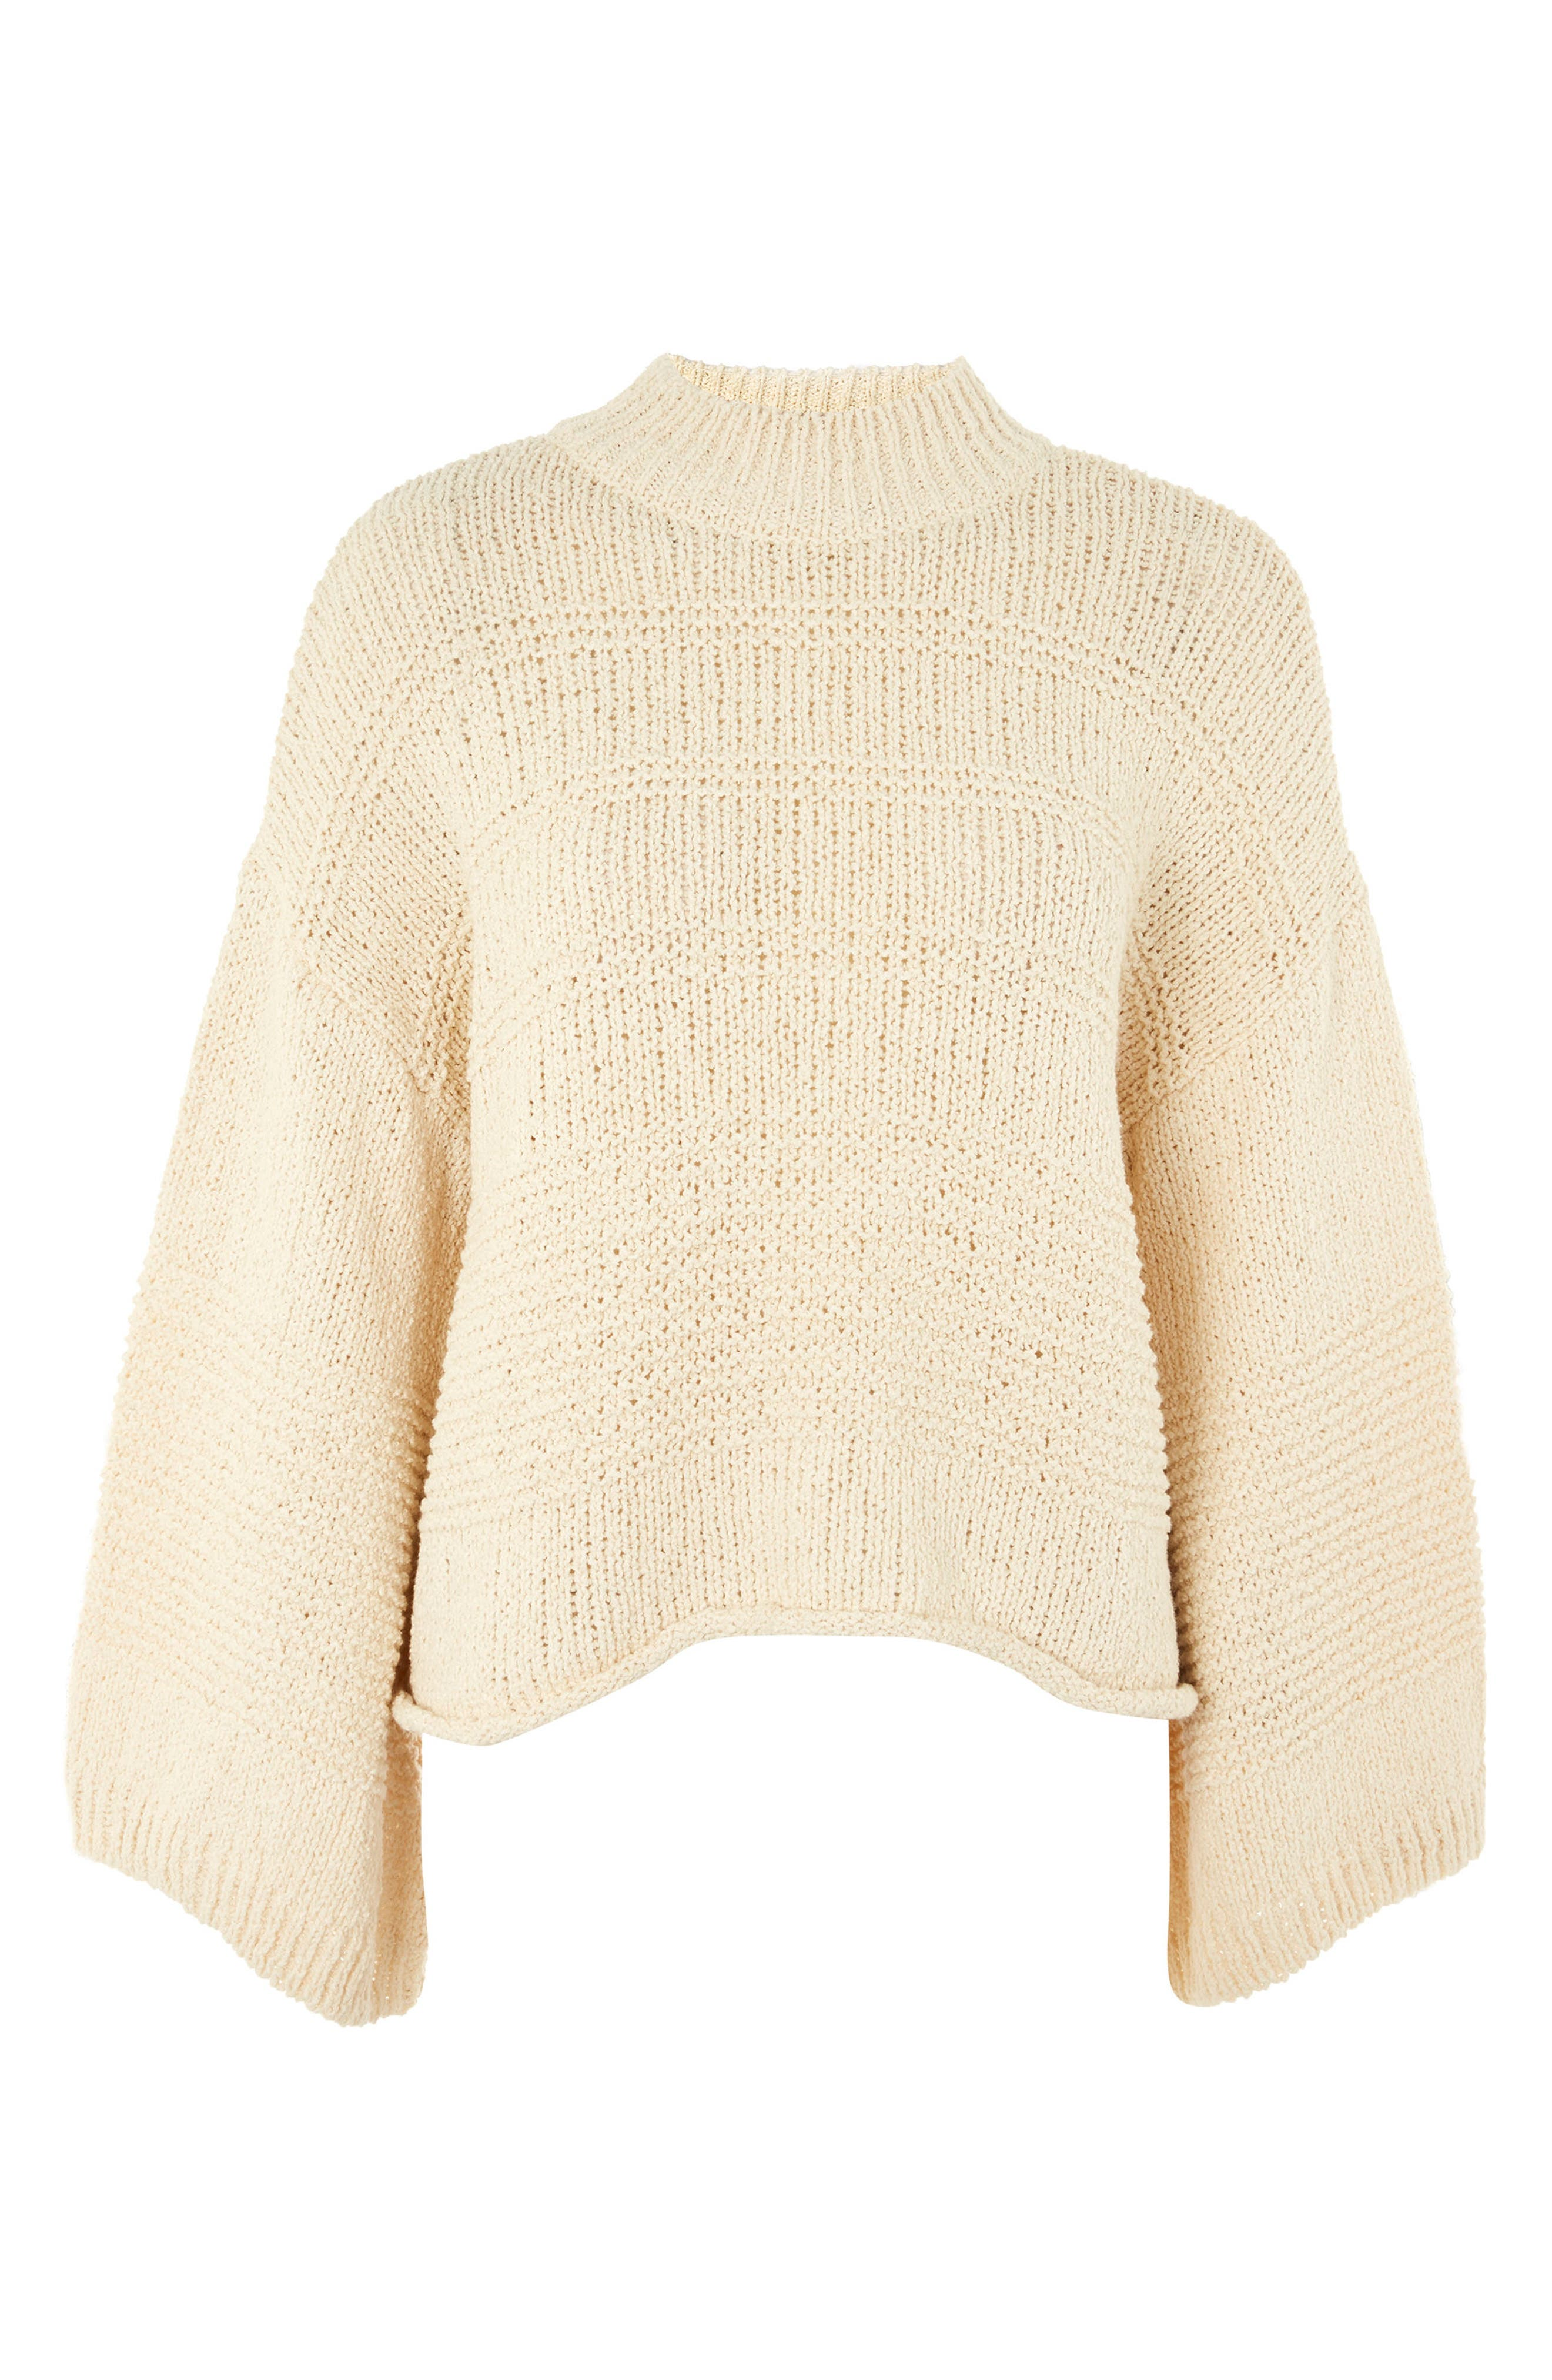 Natural Yarn Bell Sleeve Sweater,                             Alternate thumbnail 3, color,                             Ivory